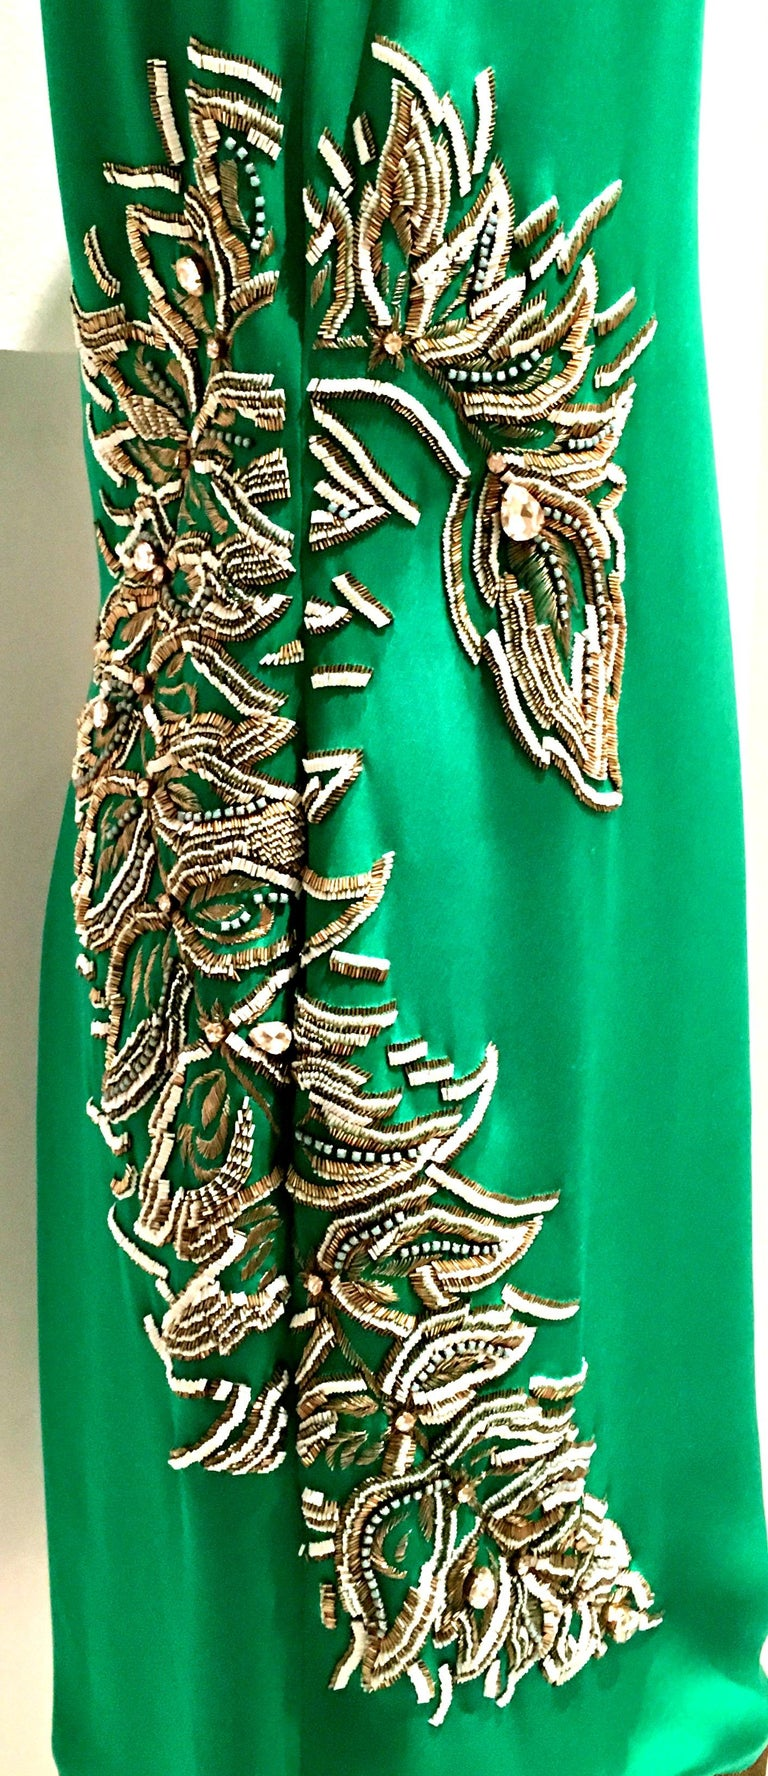 2013 New Runway Hand Beaded Silk Dress By, Thakoon, Italy- Size 6 For Sale 1